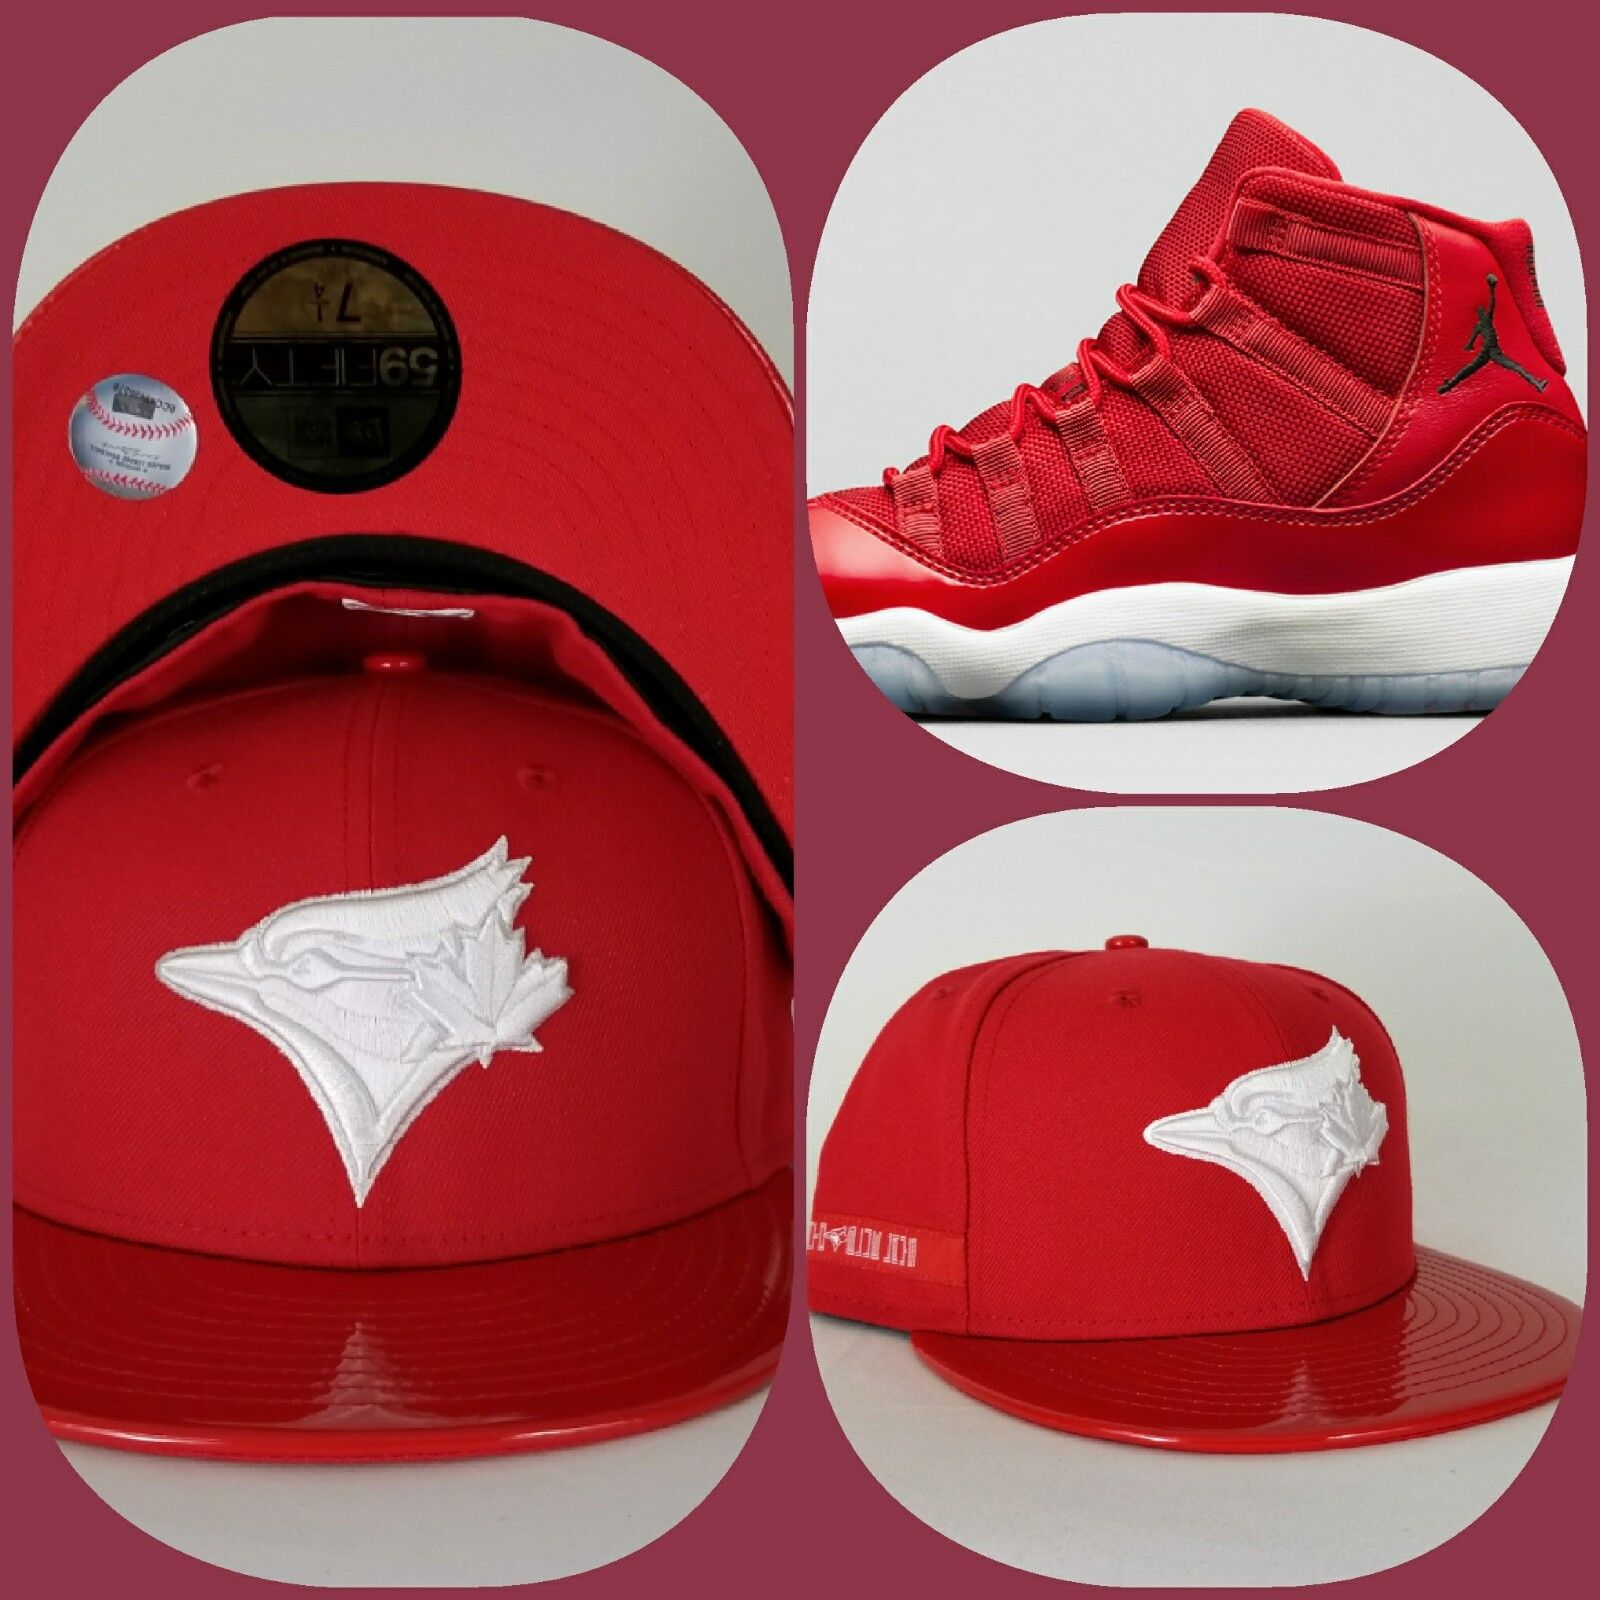 07b609c0f Details about New Era Toronto Blue Jays 59Fifty Fitted hat Jordan 11 Gym Red